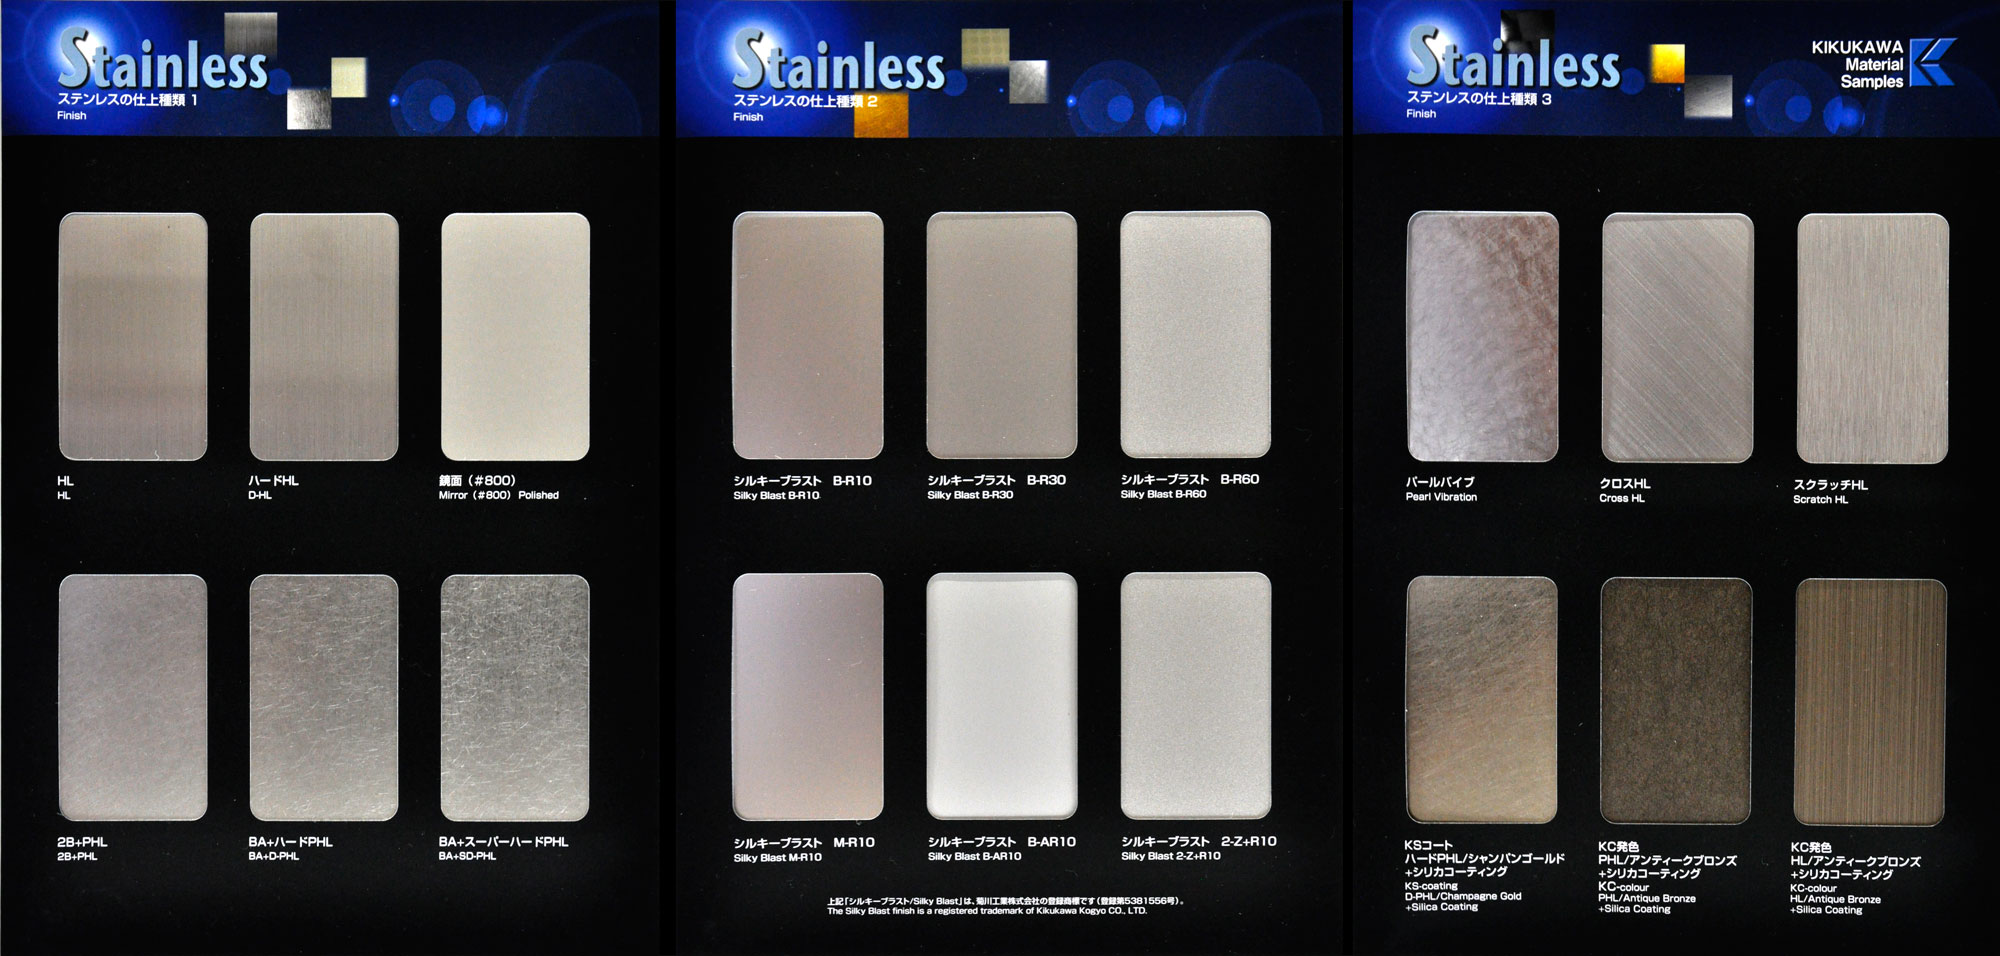 Stainless Steel Finish Samples|kikukawa